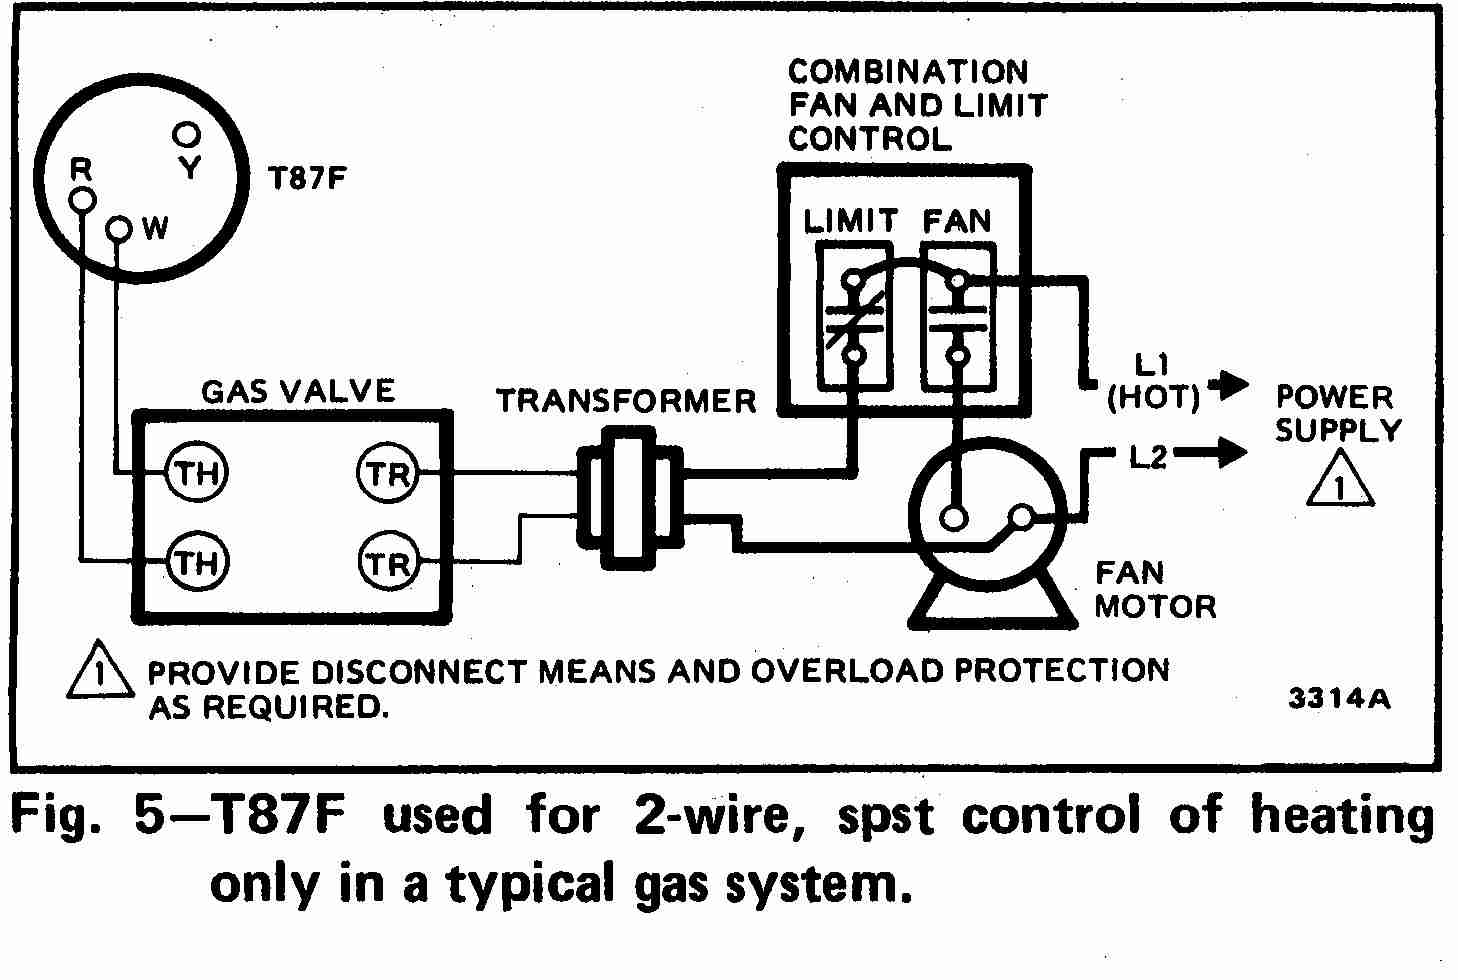 TT_T87F_0002_2Wg_DJF room thermostat wiring diagrams for hvac systems Heat Only Thermostat Wiring Diagram at panicattacktreatment.co